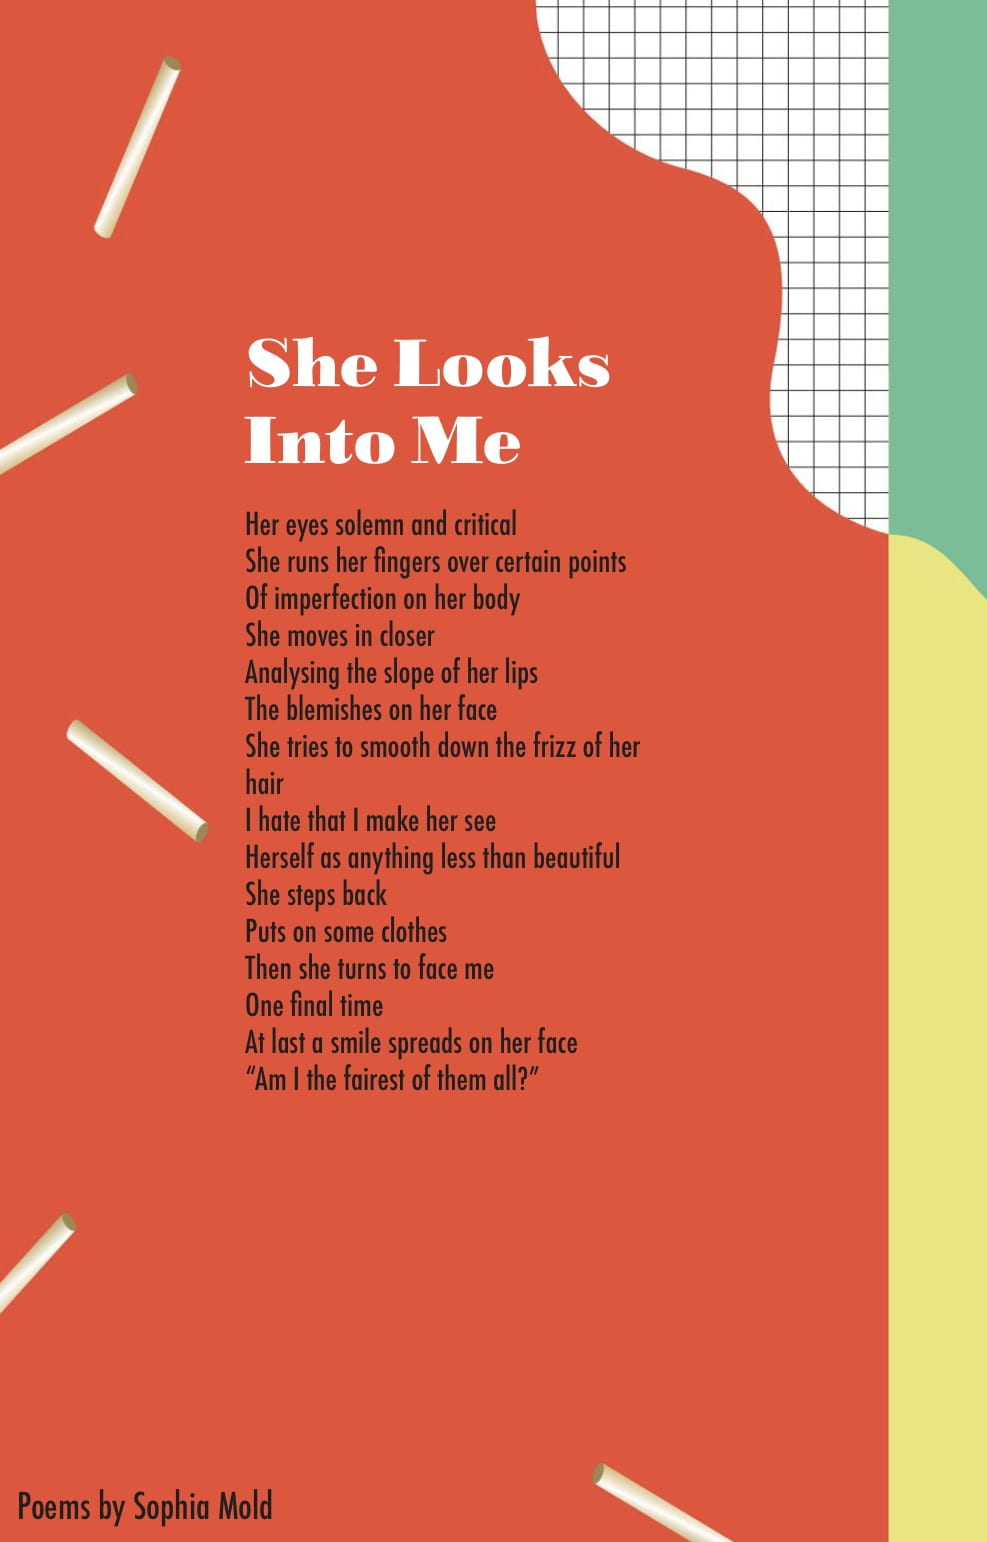 'She Looks Into Me' was originally published by The Siren Magazine.